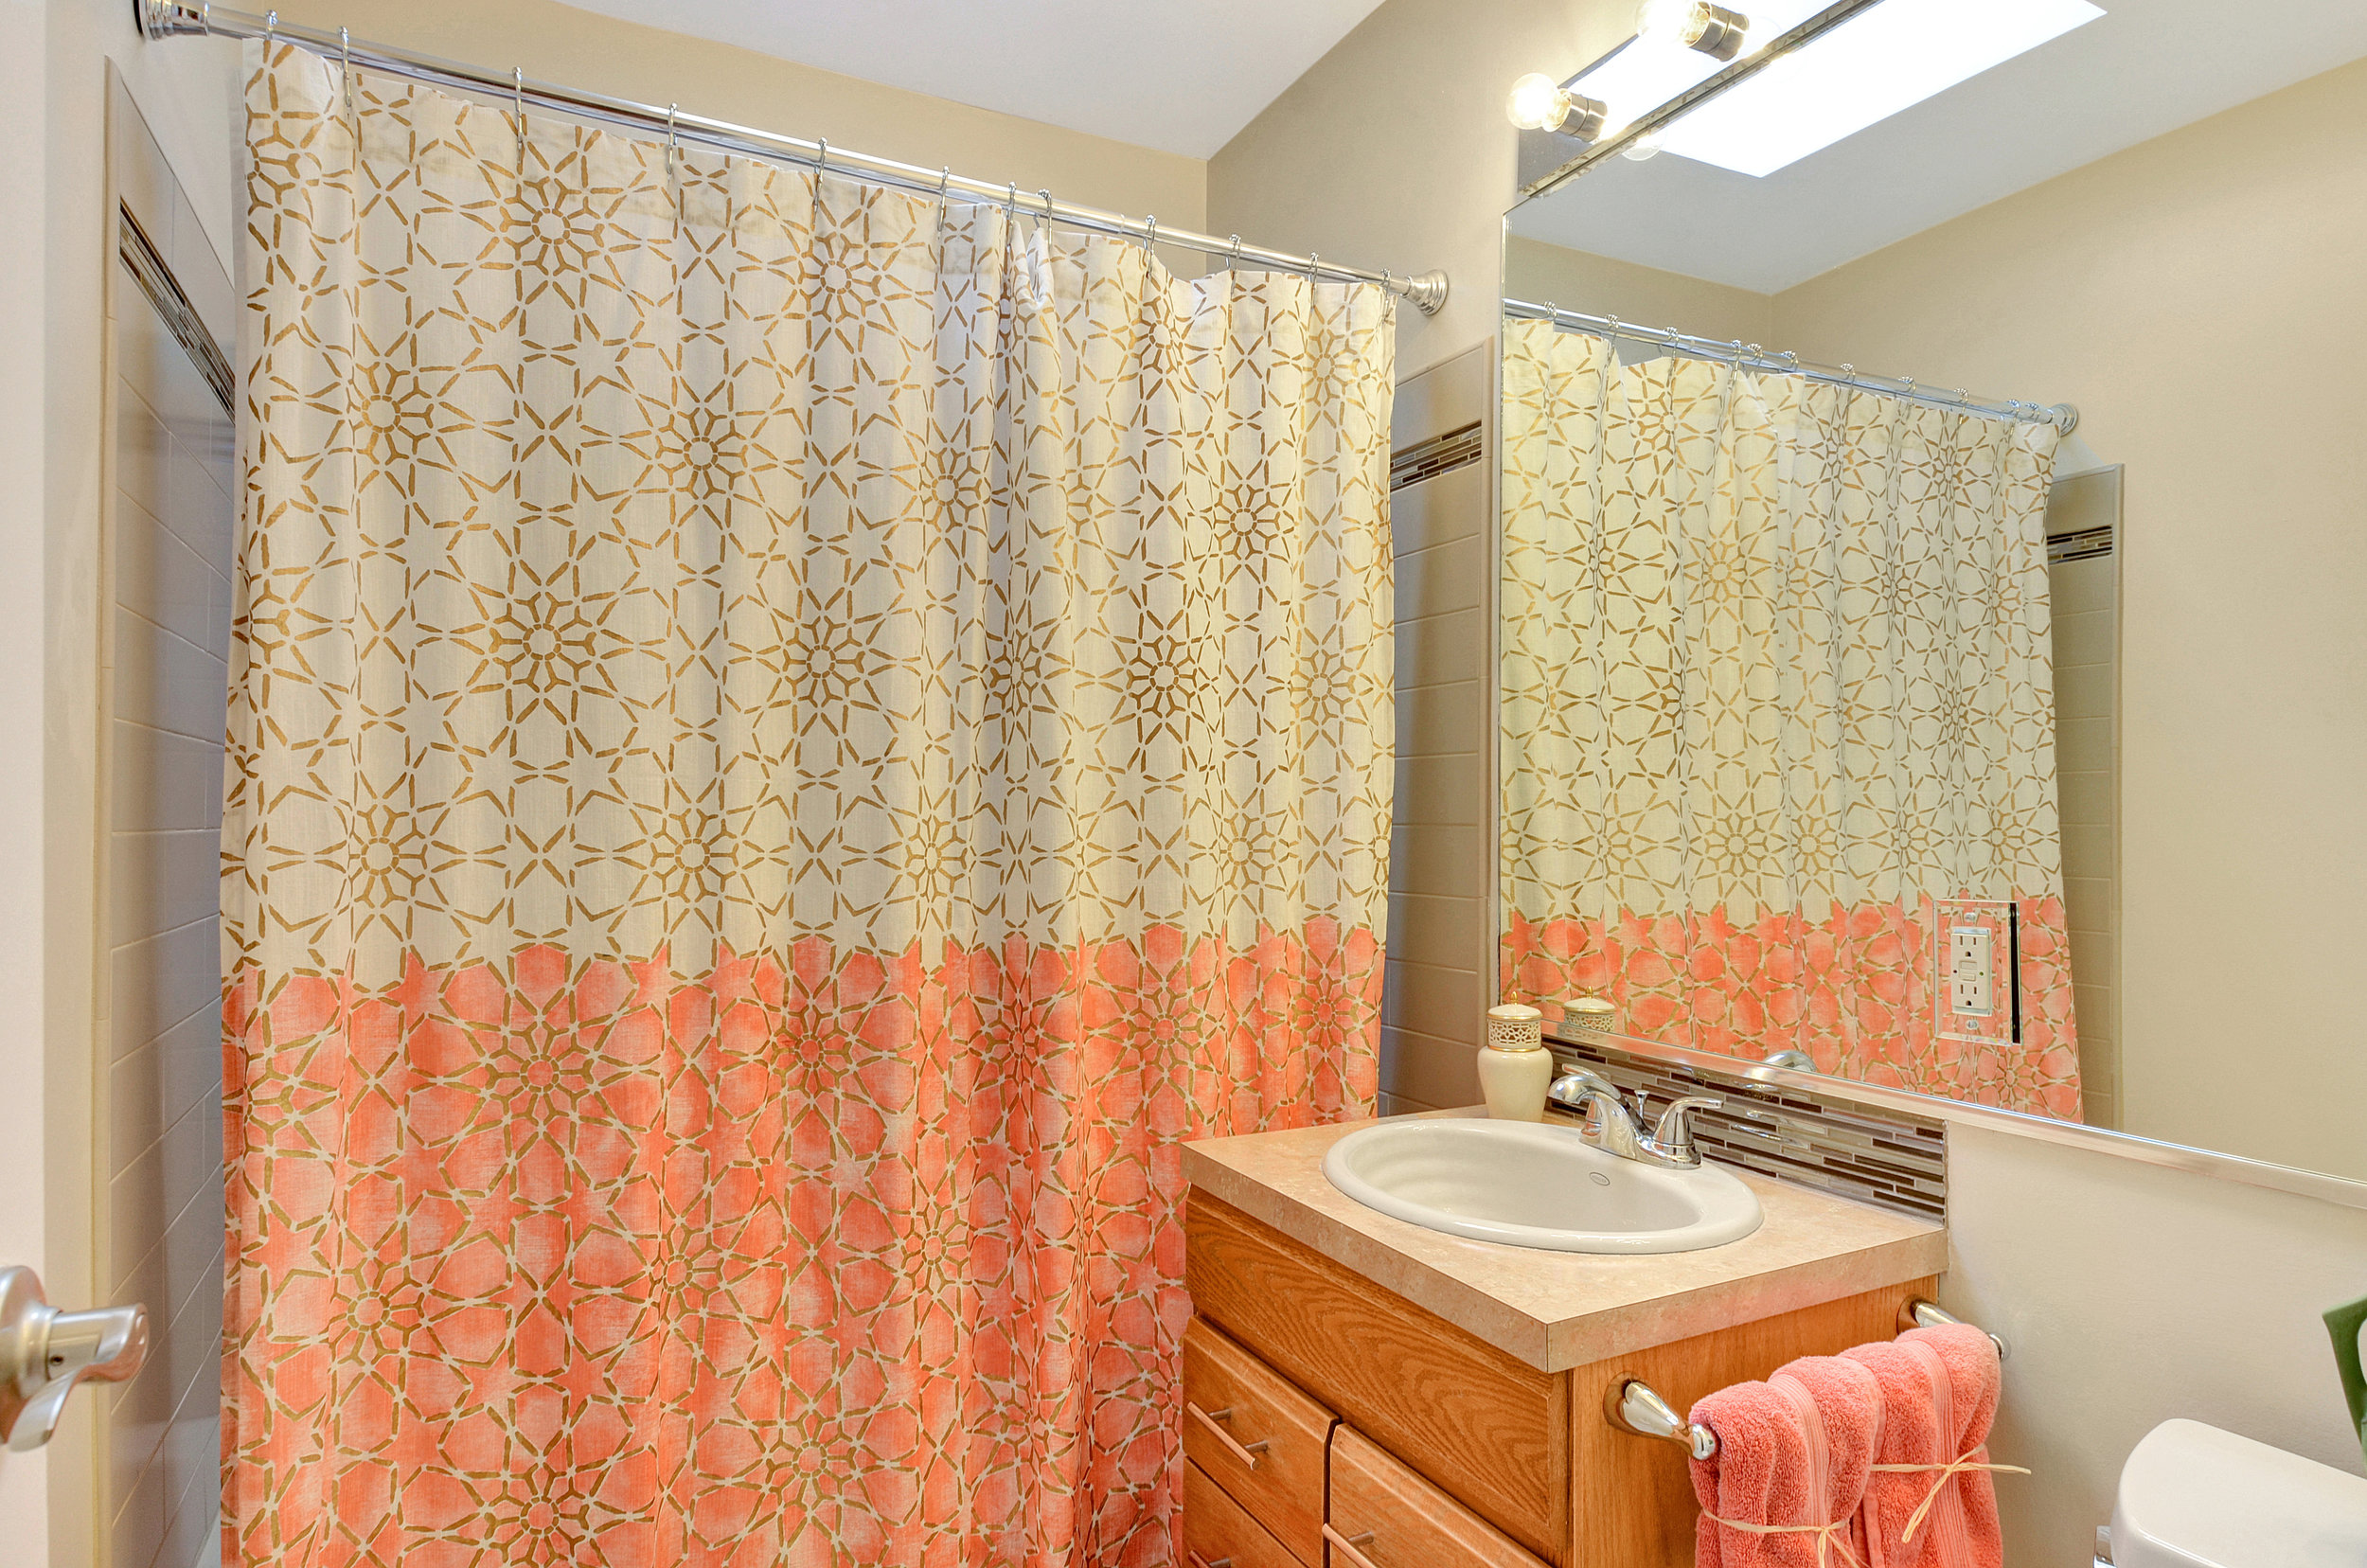 Also note that along with all the new features in this updated bathroom, there is also a new hot water tank for this home to keep showers and baths comfortable and warm.